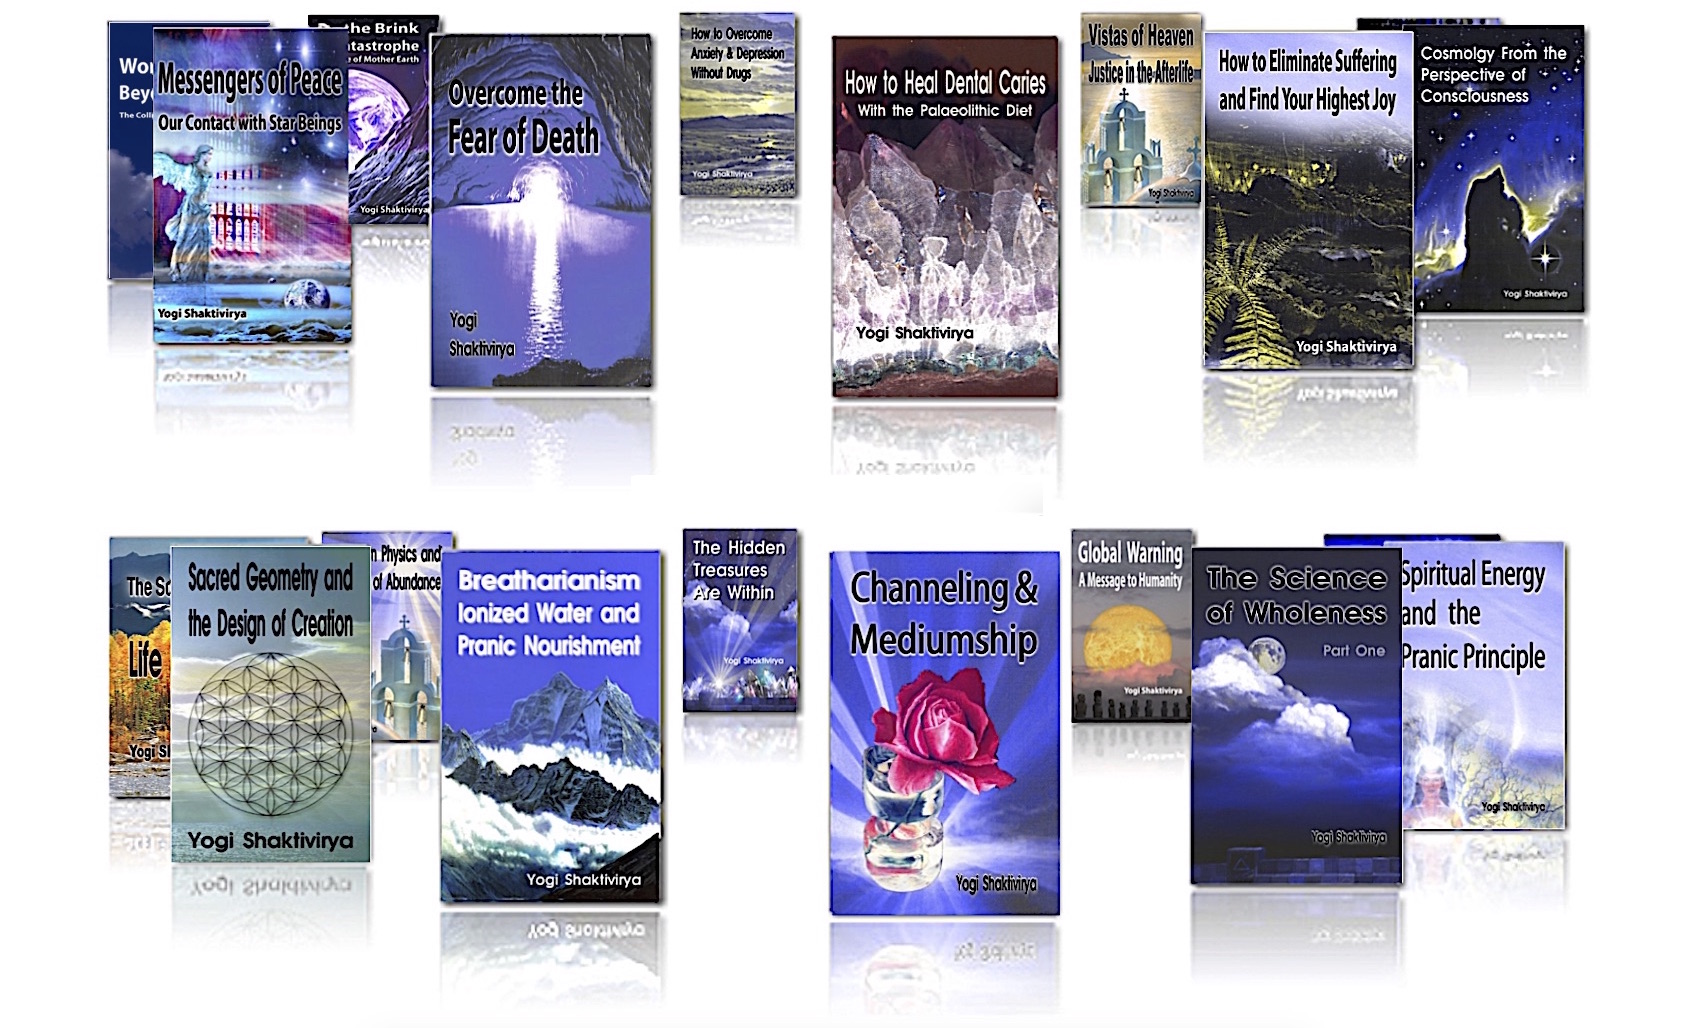 Russll's Spiritual Books on cosmology, afterlife, diet, nutrition, sacred geometry, and law of attraction